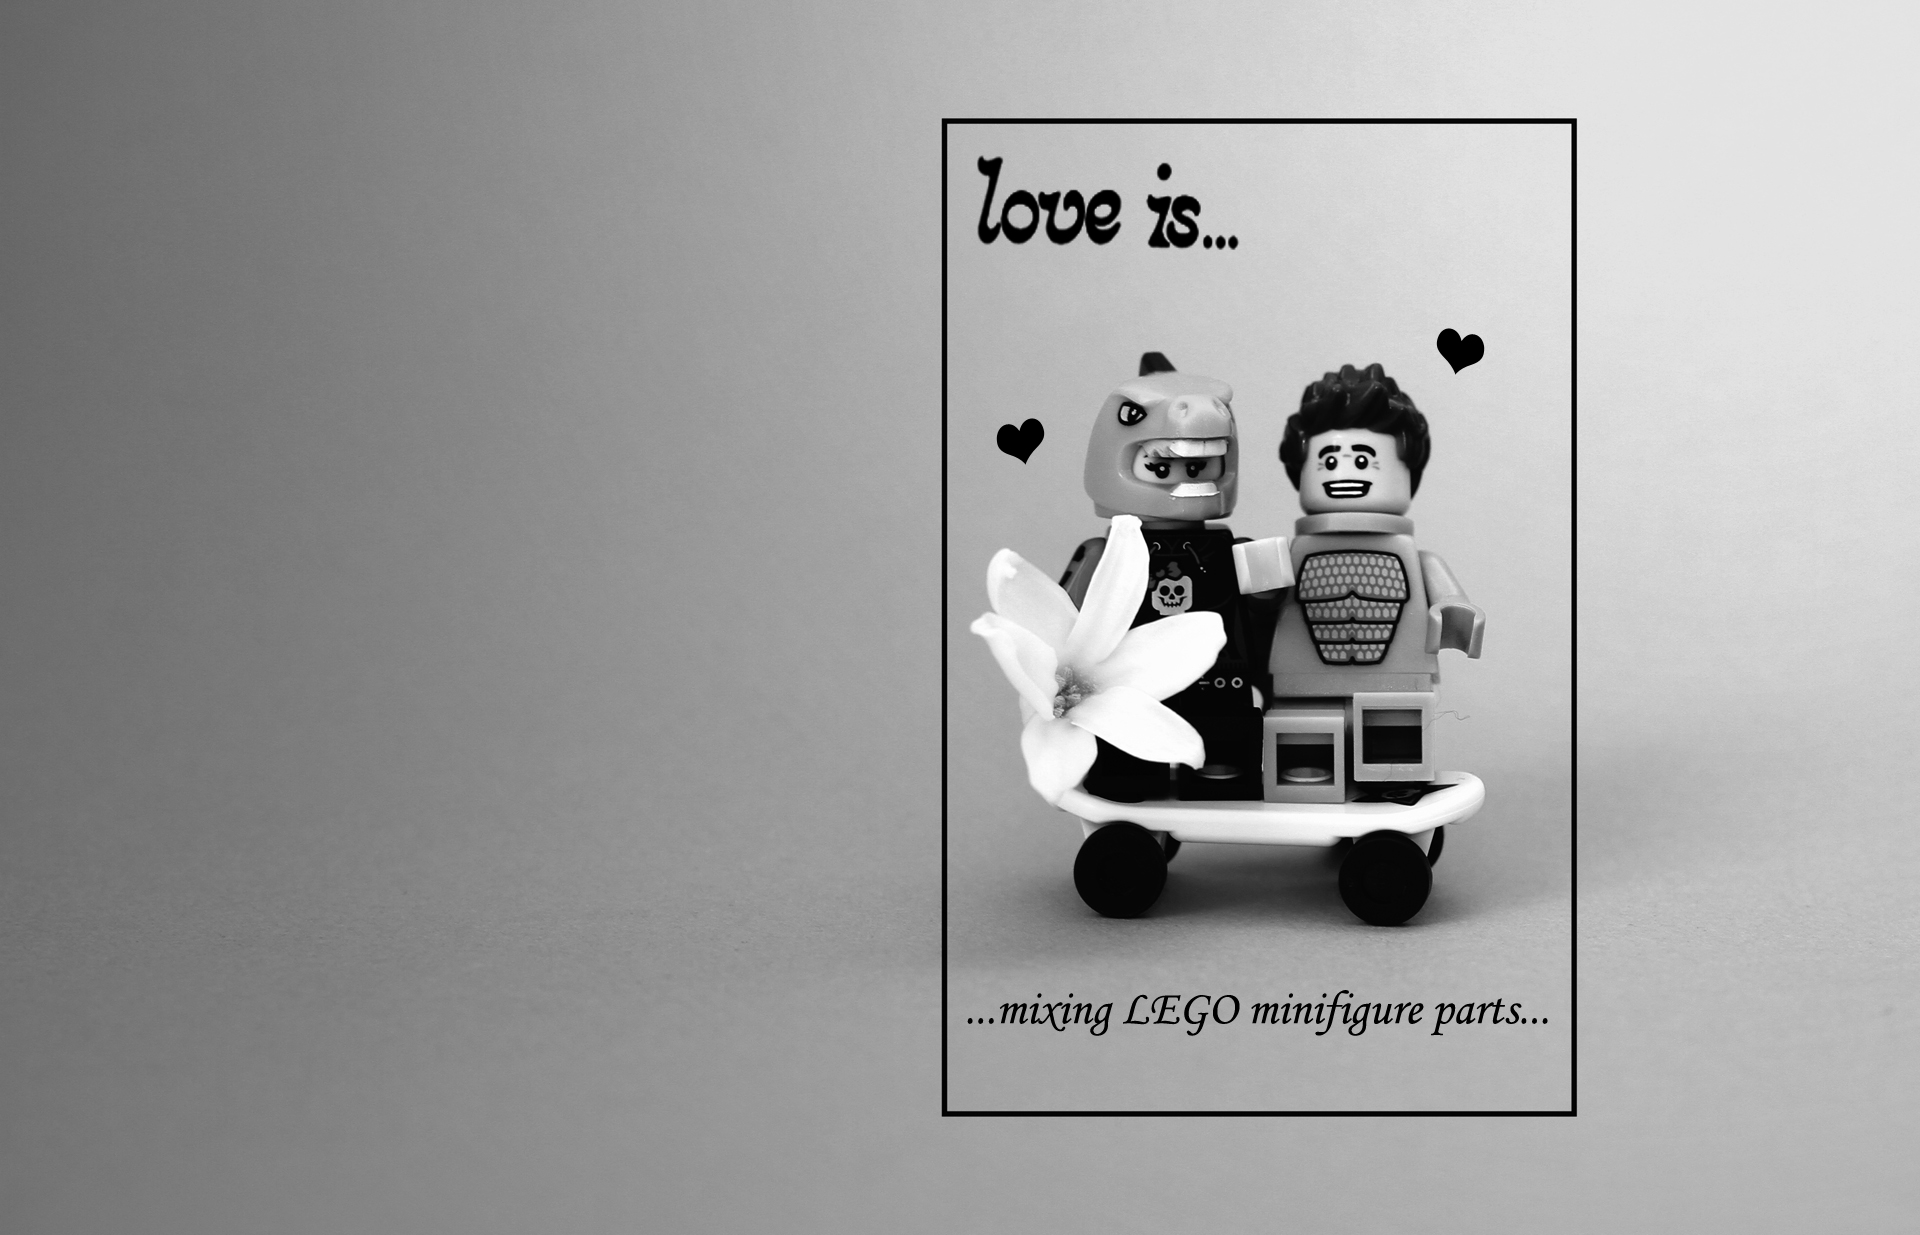 legopicture.com||http://legopicture.com/wp-content/uploads/2012/05/love-is-mixing-lego-minifigure-parts1.jpg